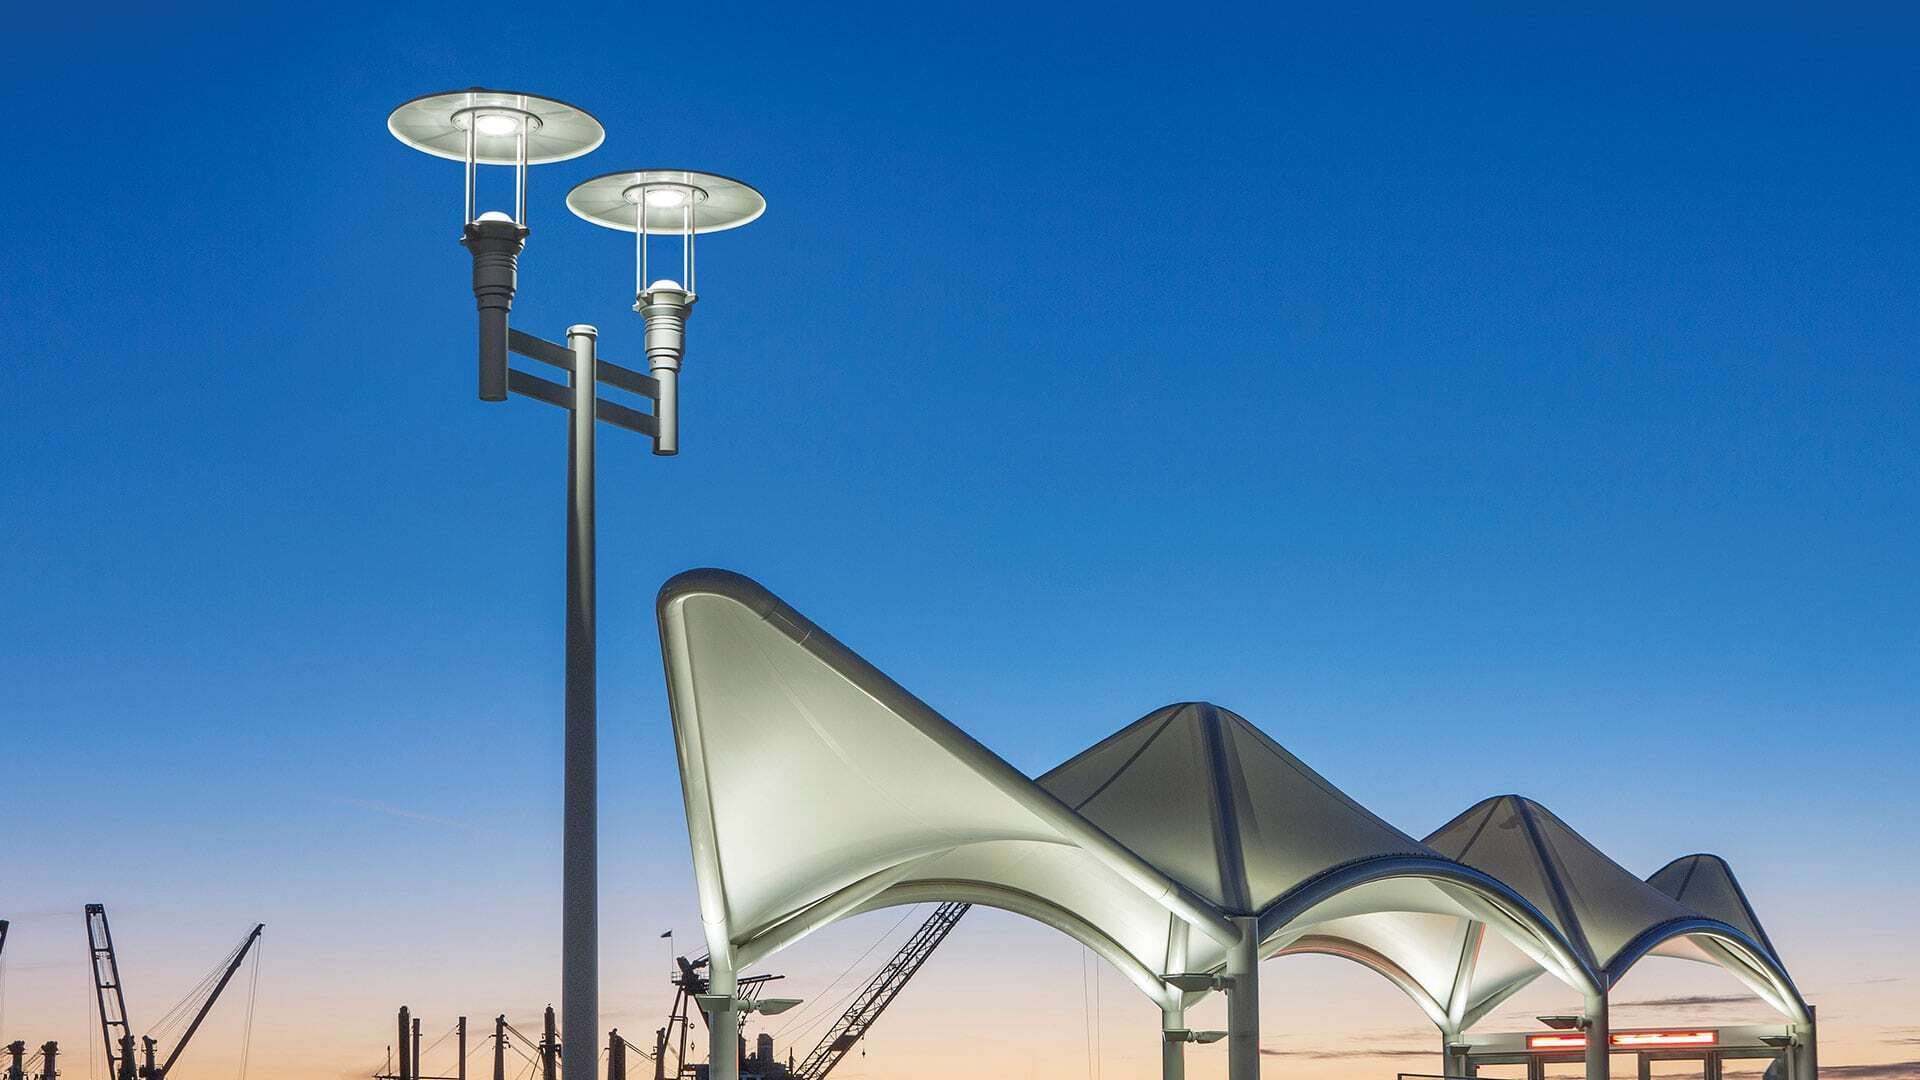 The Seaplane Lagoon Ferry Terminal is located in Alameda, CA featuring lighting products by Acuity Brands - Luminis®. Project in collaboration with Marcy Wong Donn Logan Architects and HLB Lighting.  Photographer: Billy Hustace Photography